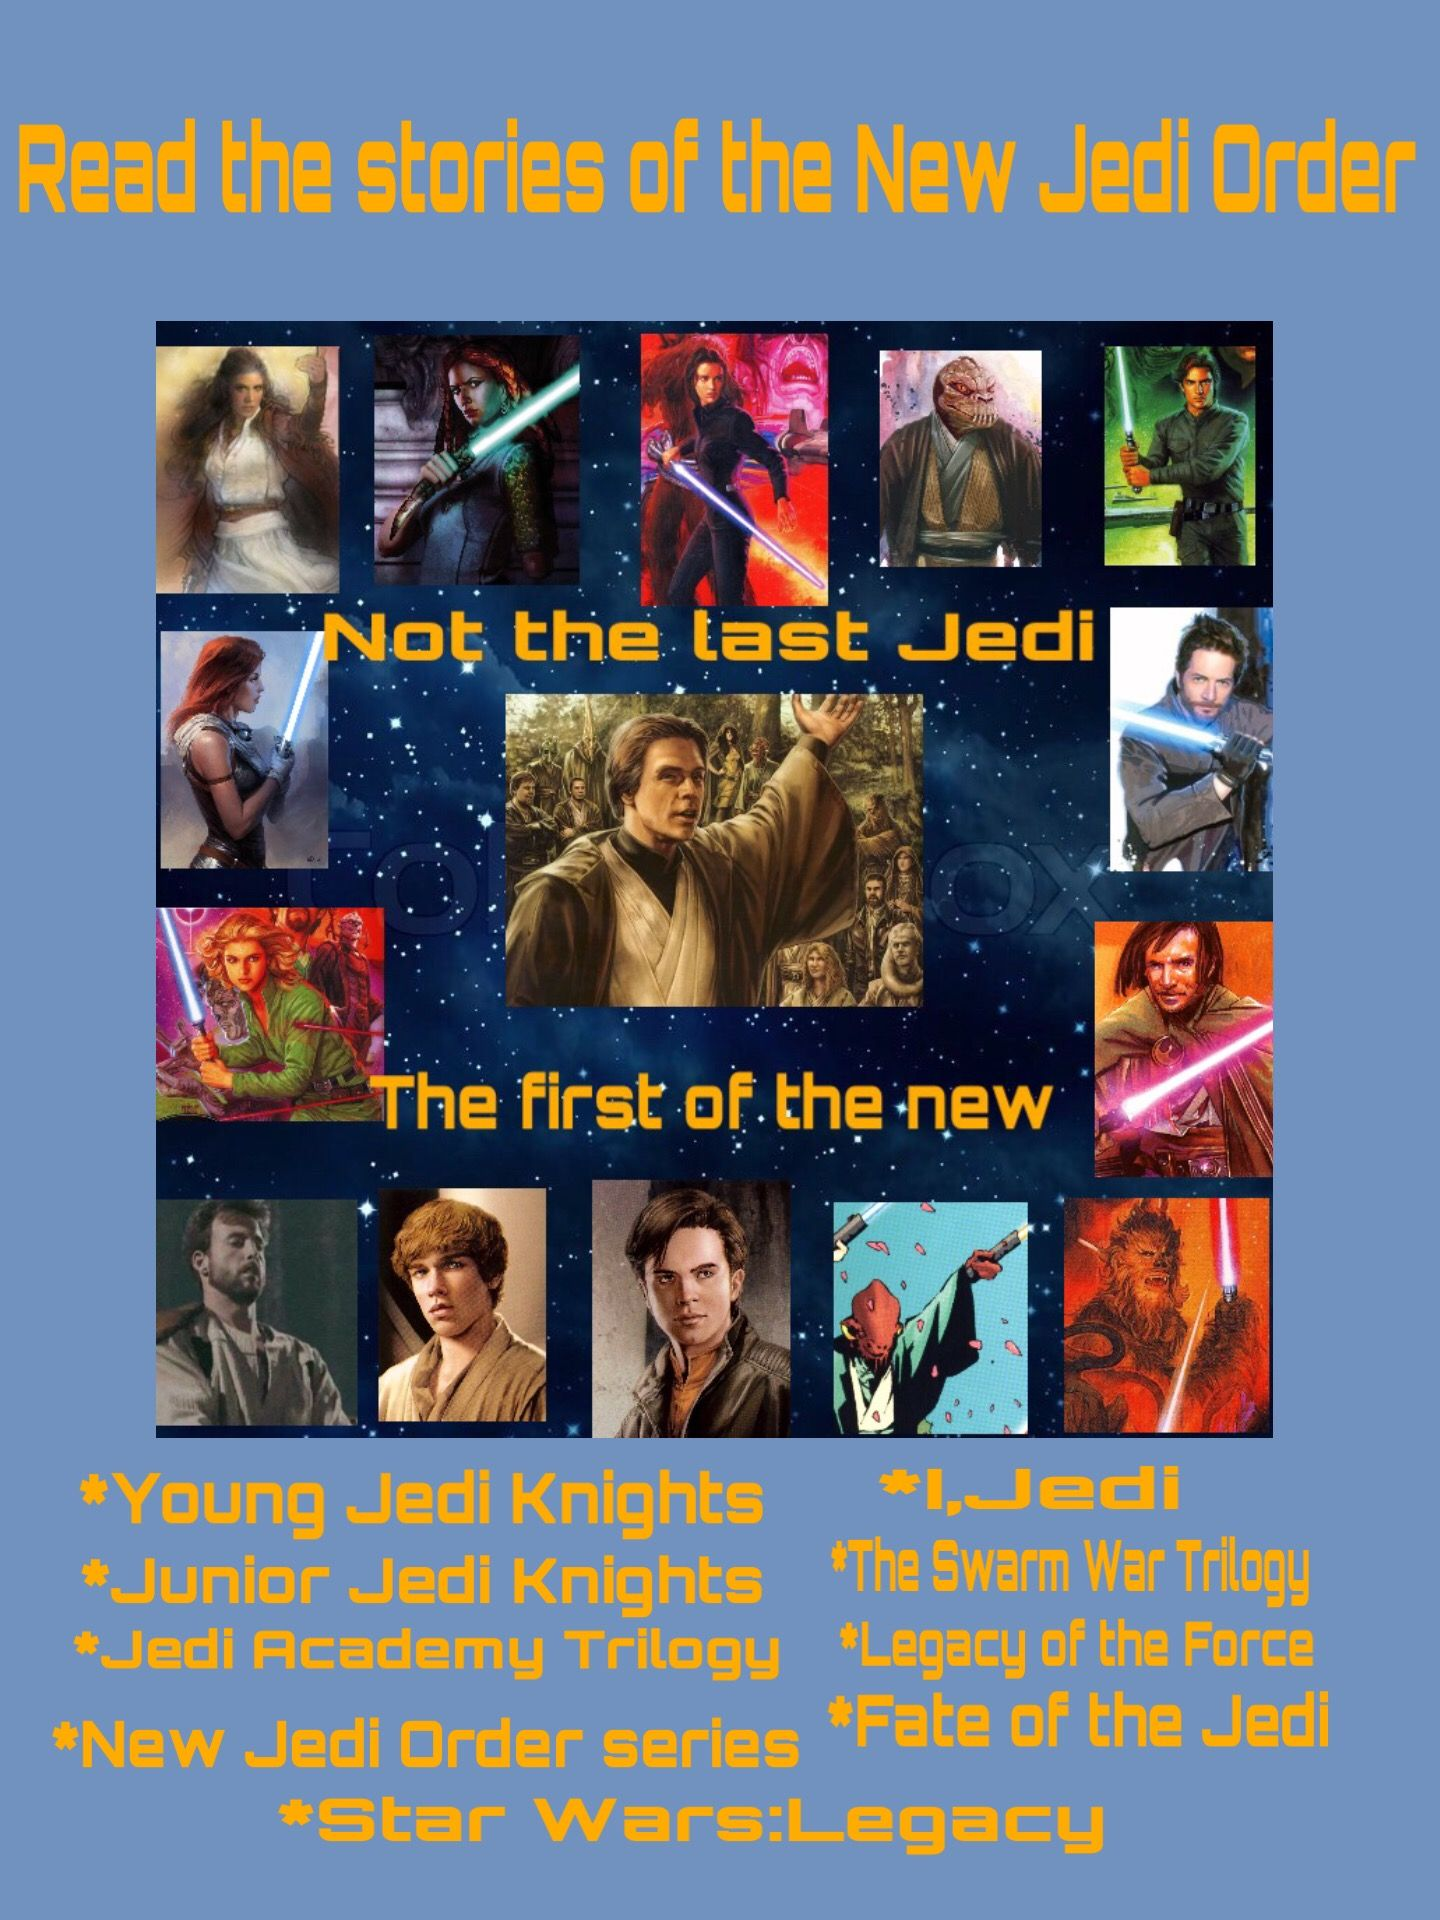 Pin By Marajade23 On True Star Wars Canon Memes Star Wars Books Star Wars Legacy Star Wars Universe